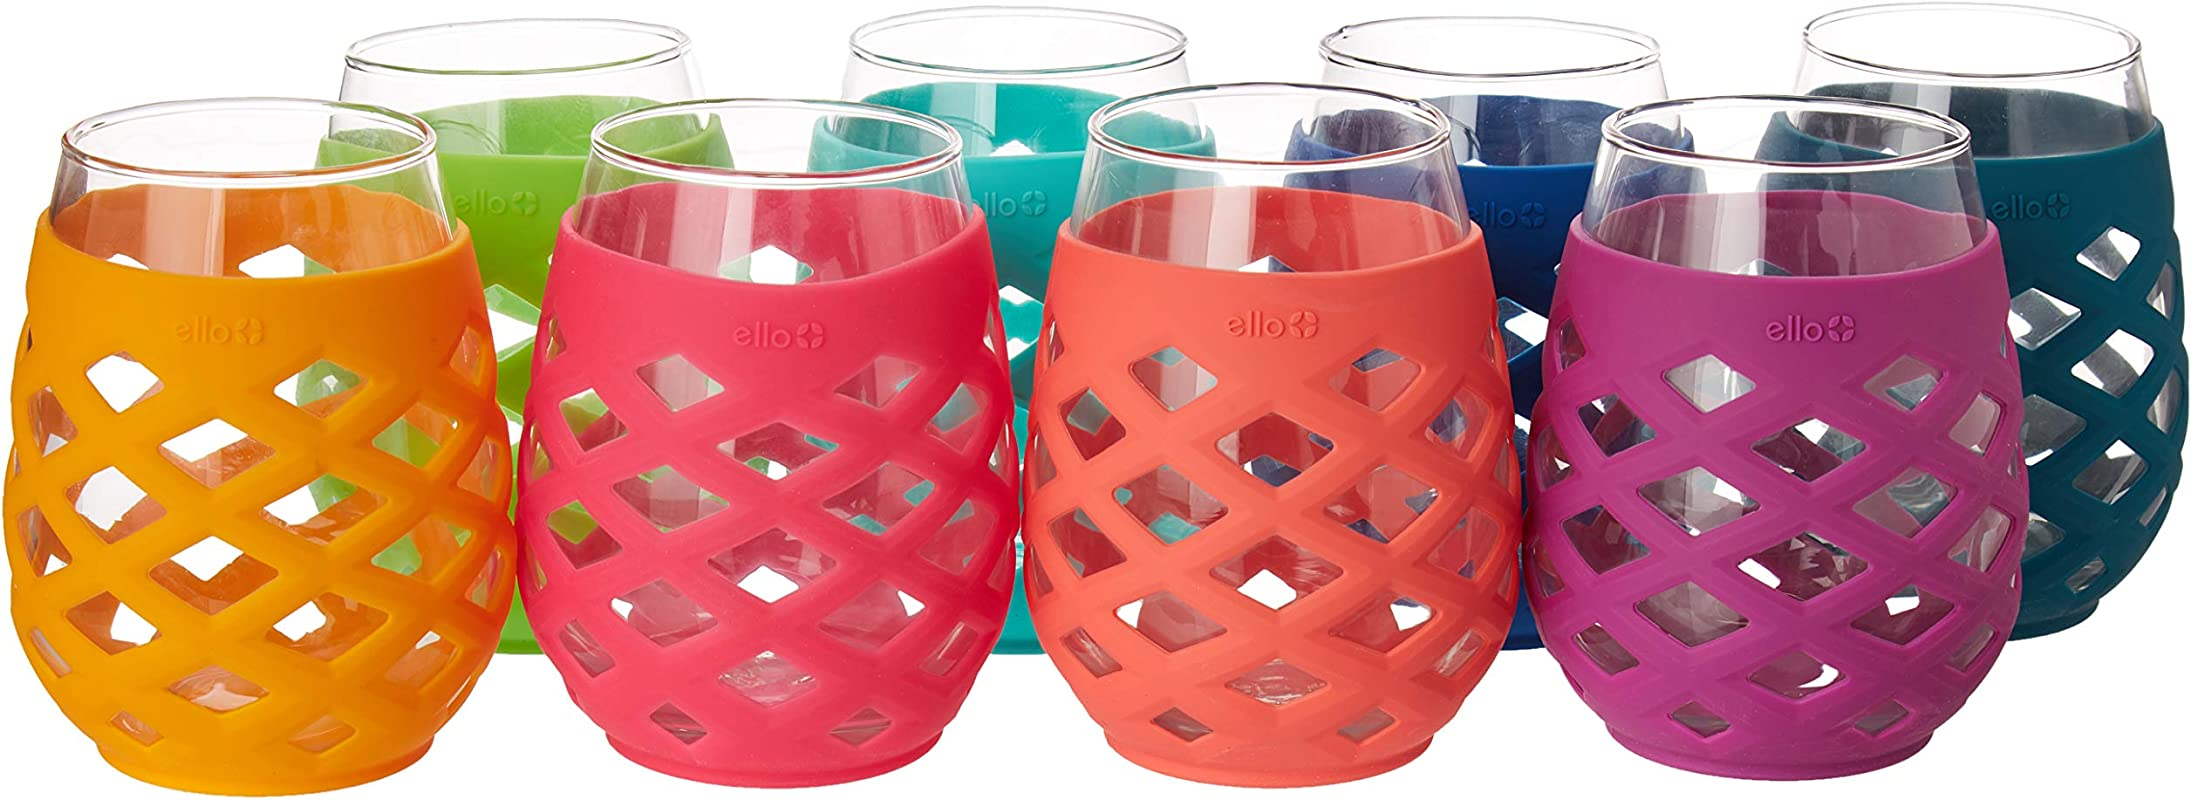 Ello 8 Piece Silicone Glassware Set 17oz